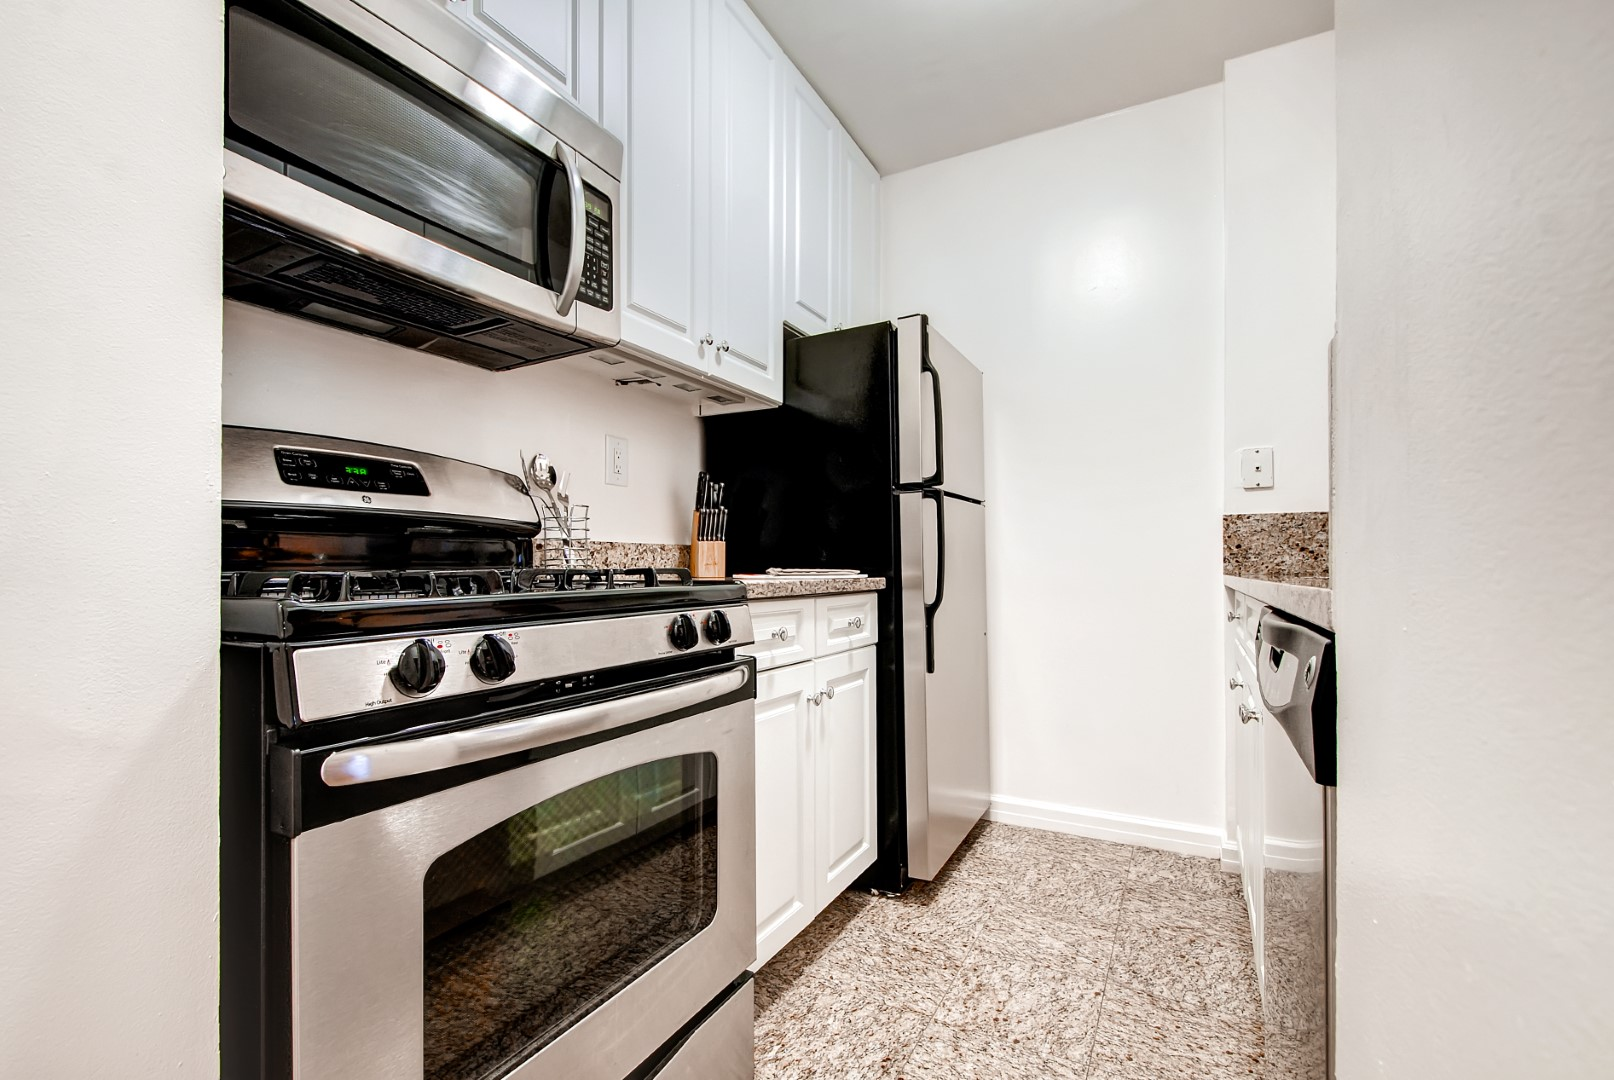 Kitchen at 56th Street Symphony House Apartments, Midtown West, New York